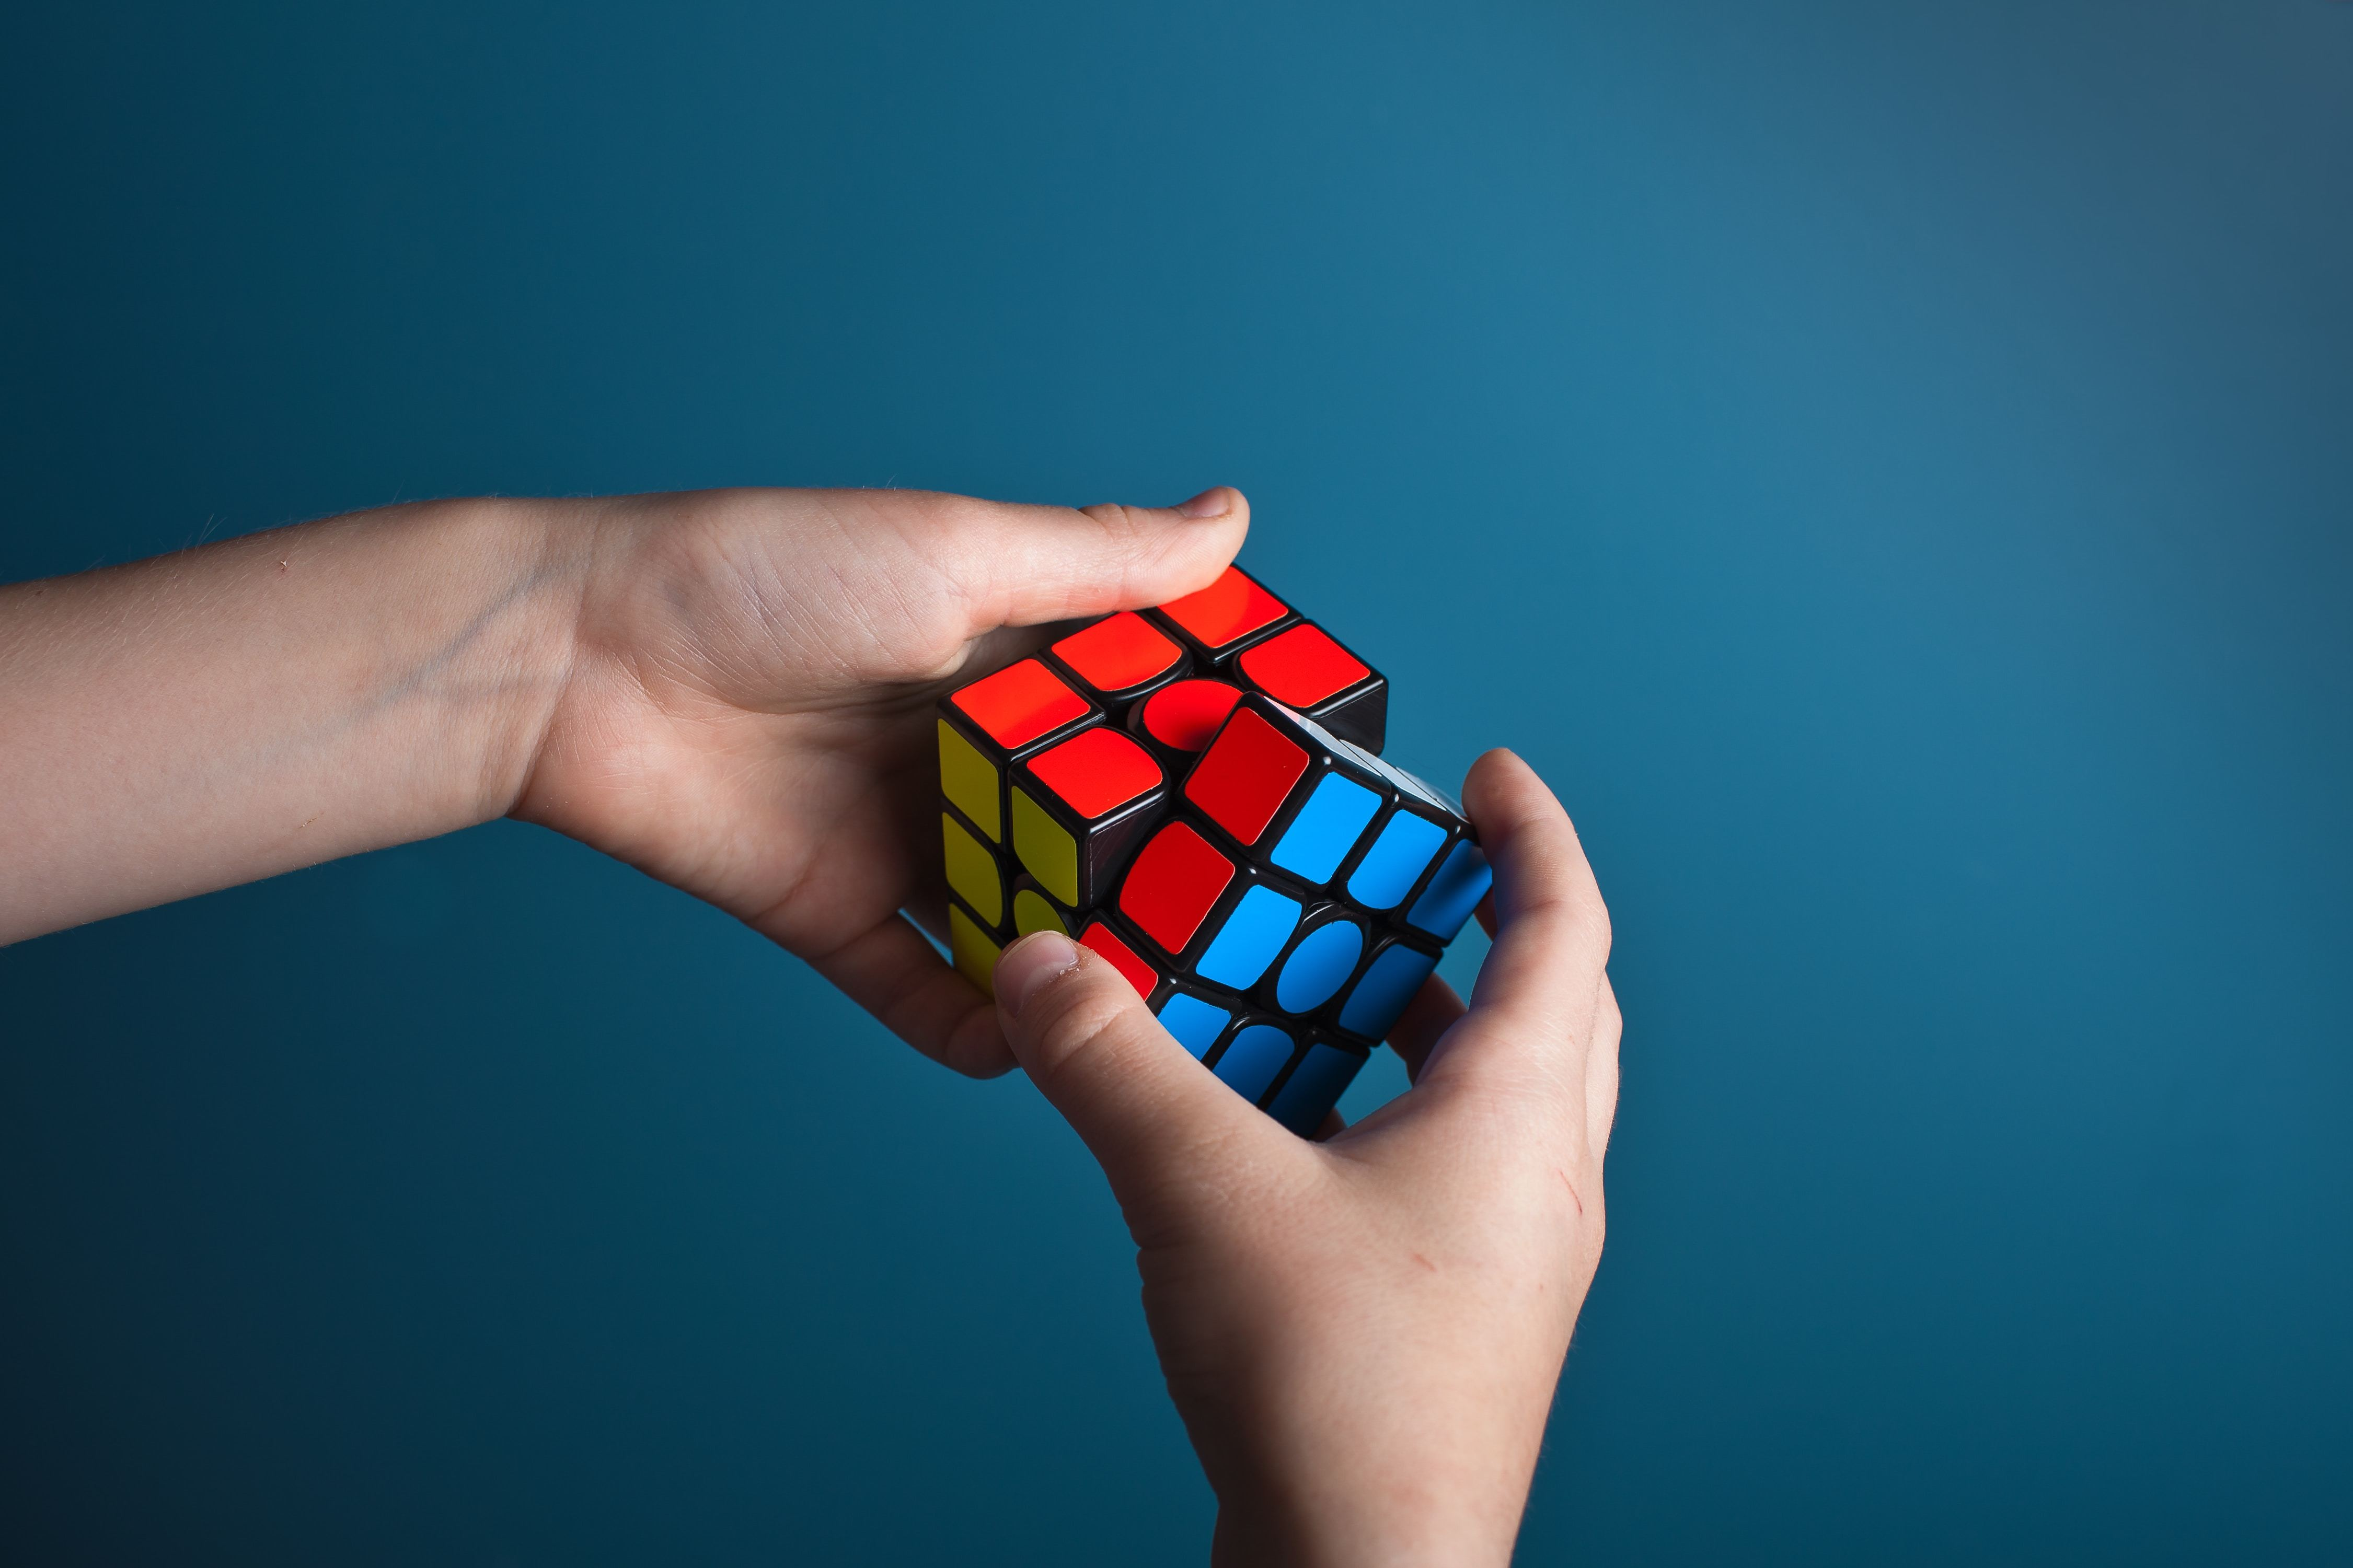 Two hands holding a Rubik's cube puzzle that's about to be solved.